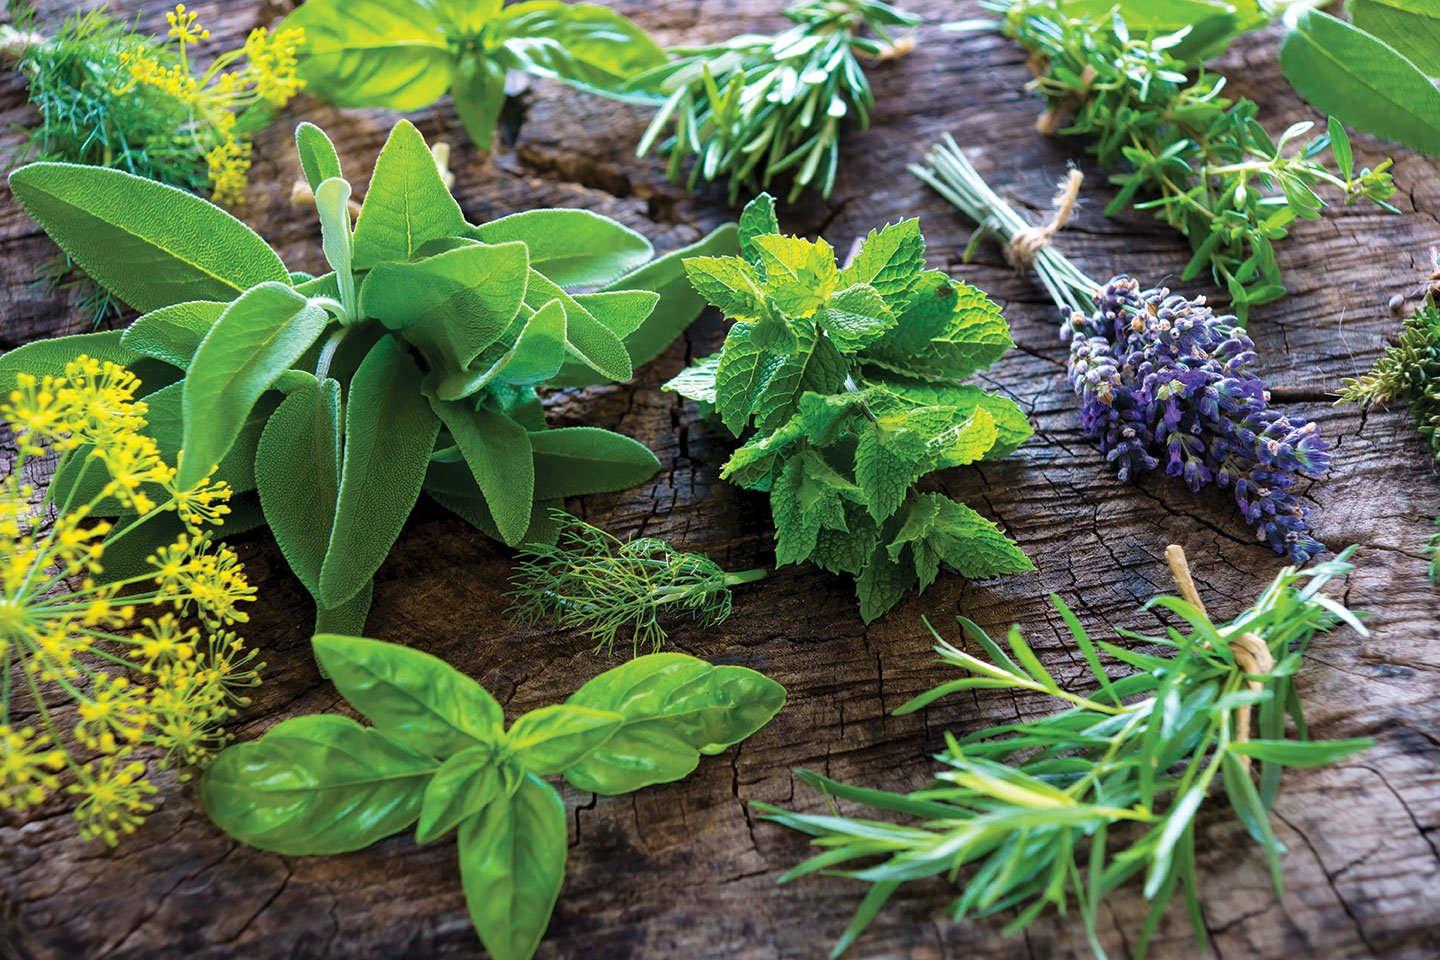 grow your own herbs herb garden bunches of basil mint sage lavender rosemary and more